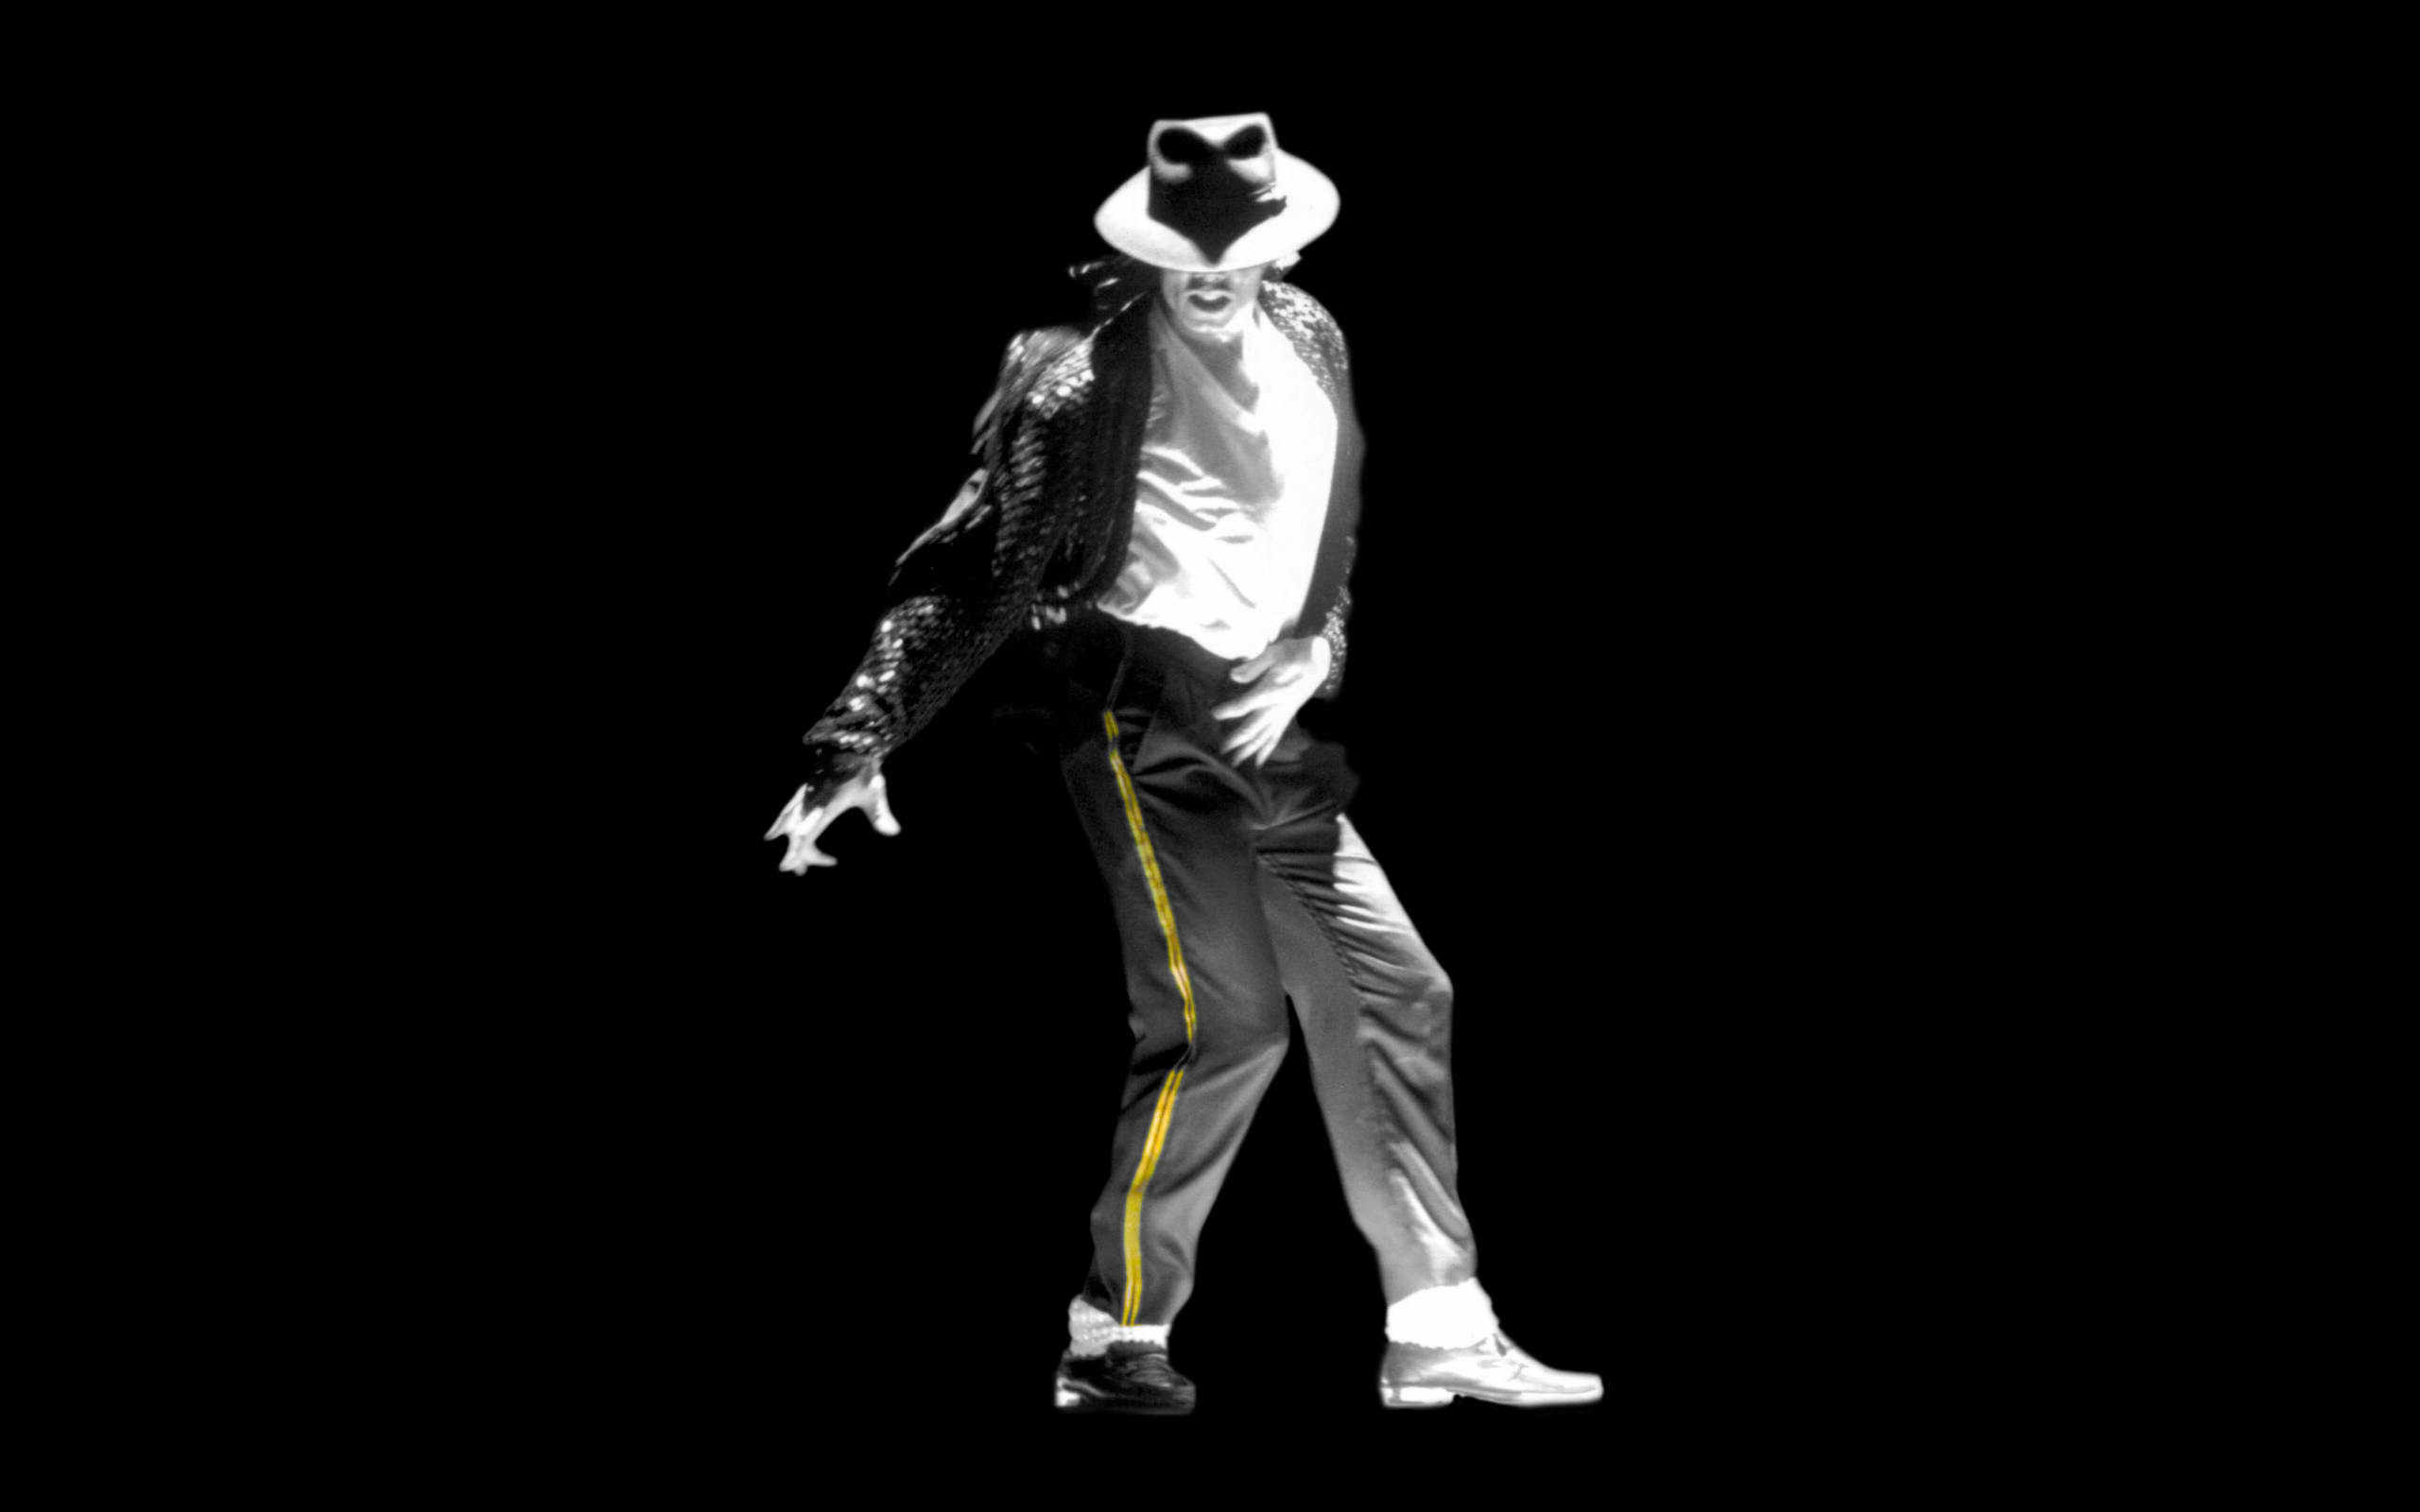 Michael Jackson Images ~unforgettable~ HD Wallpaper And